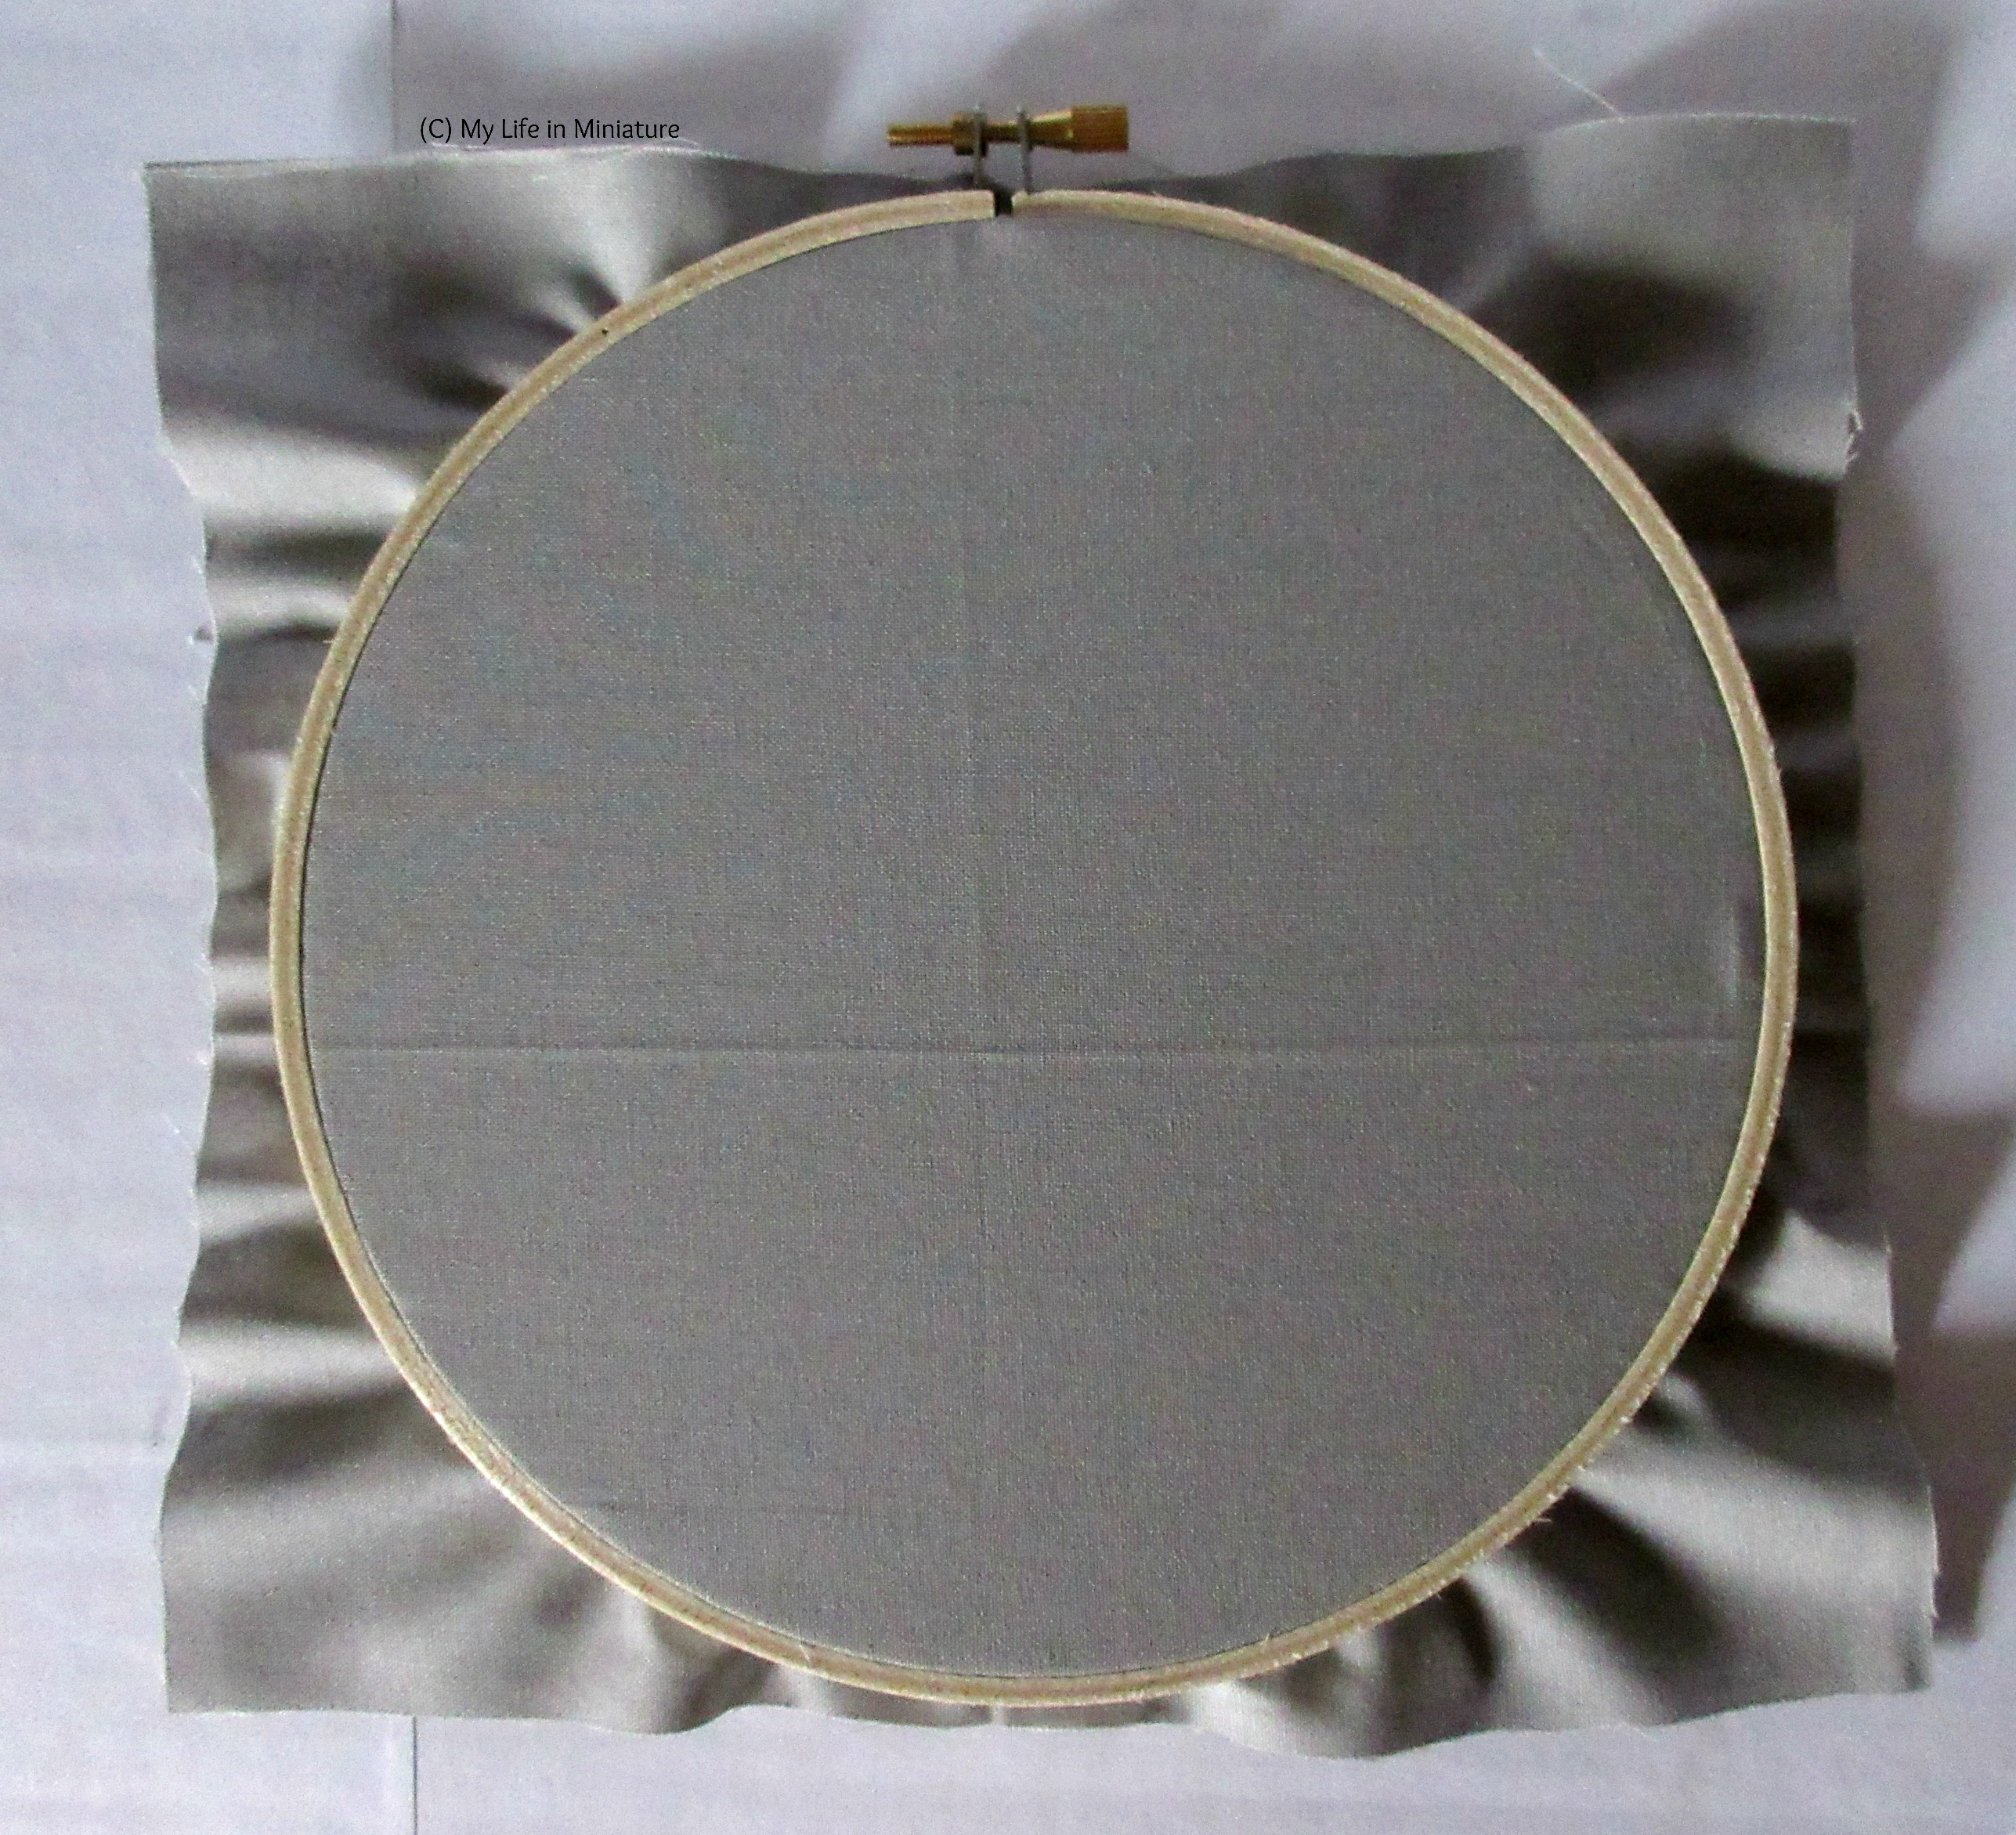 An embroidery hoop sits on a white background, filled with grey cotton.